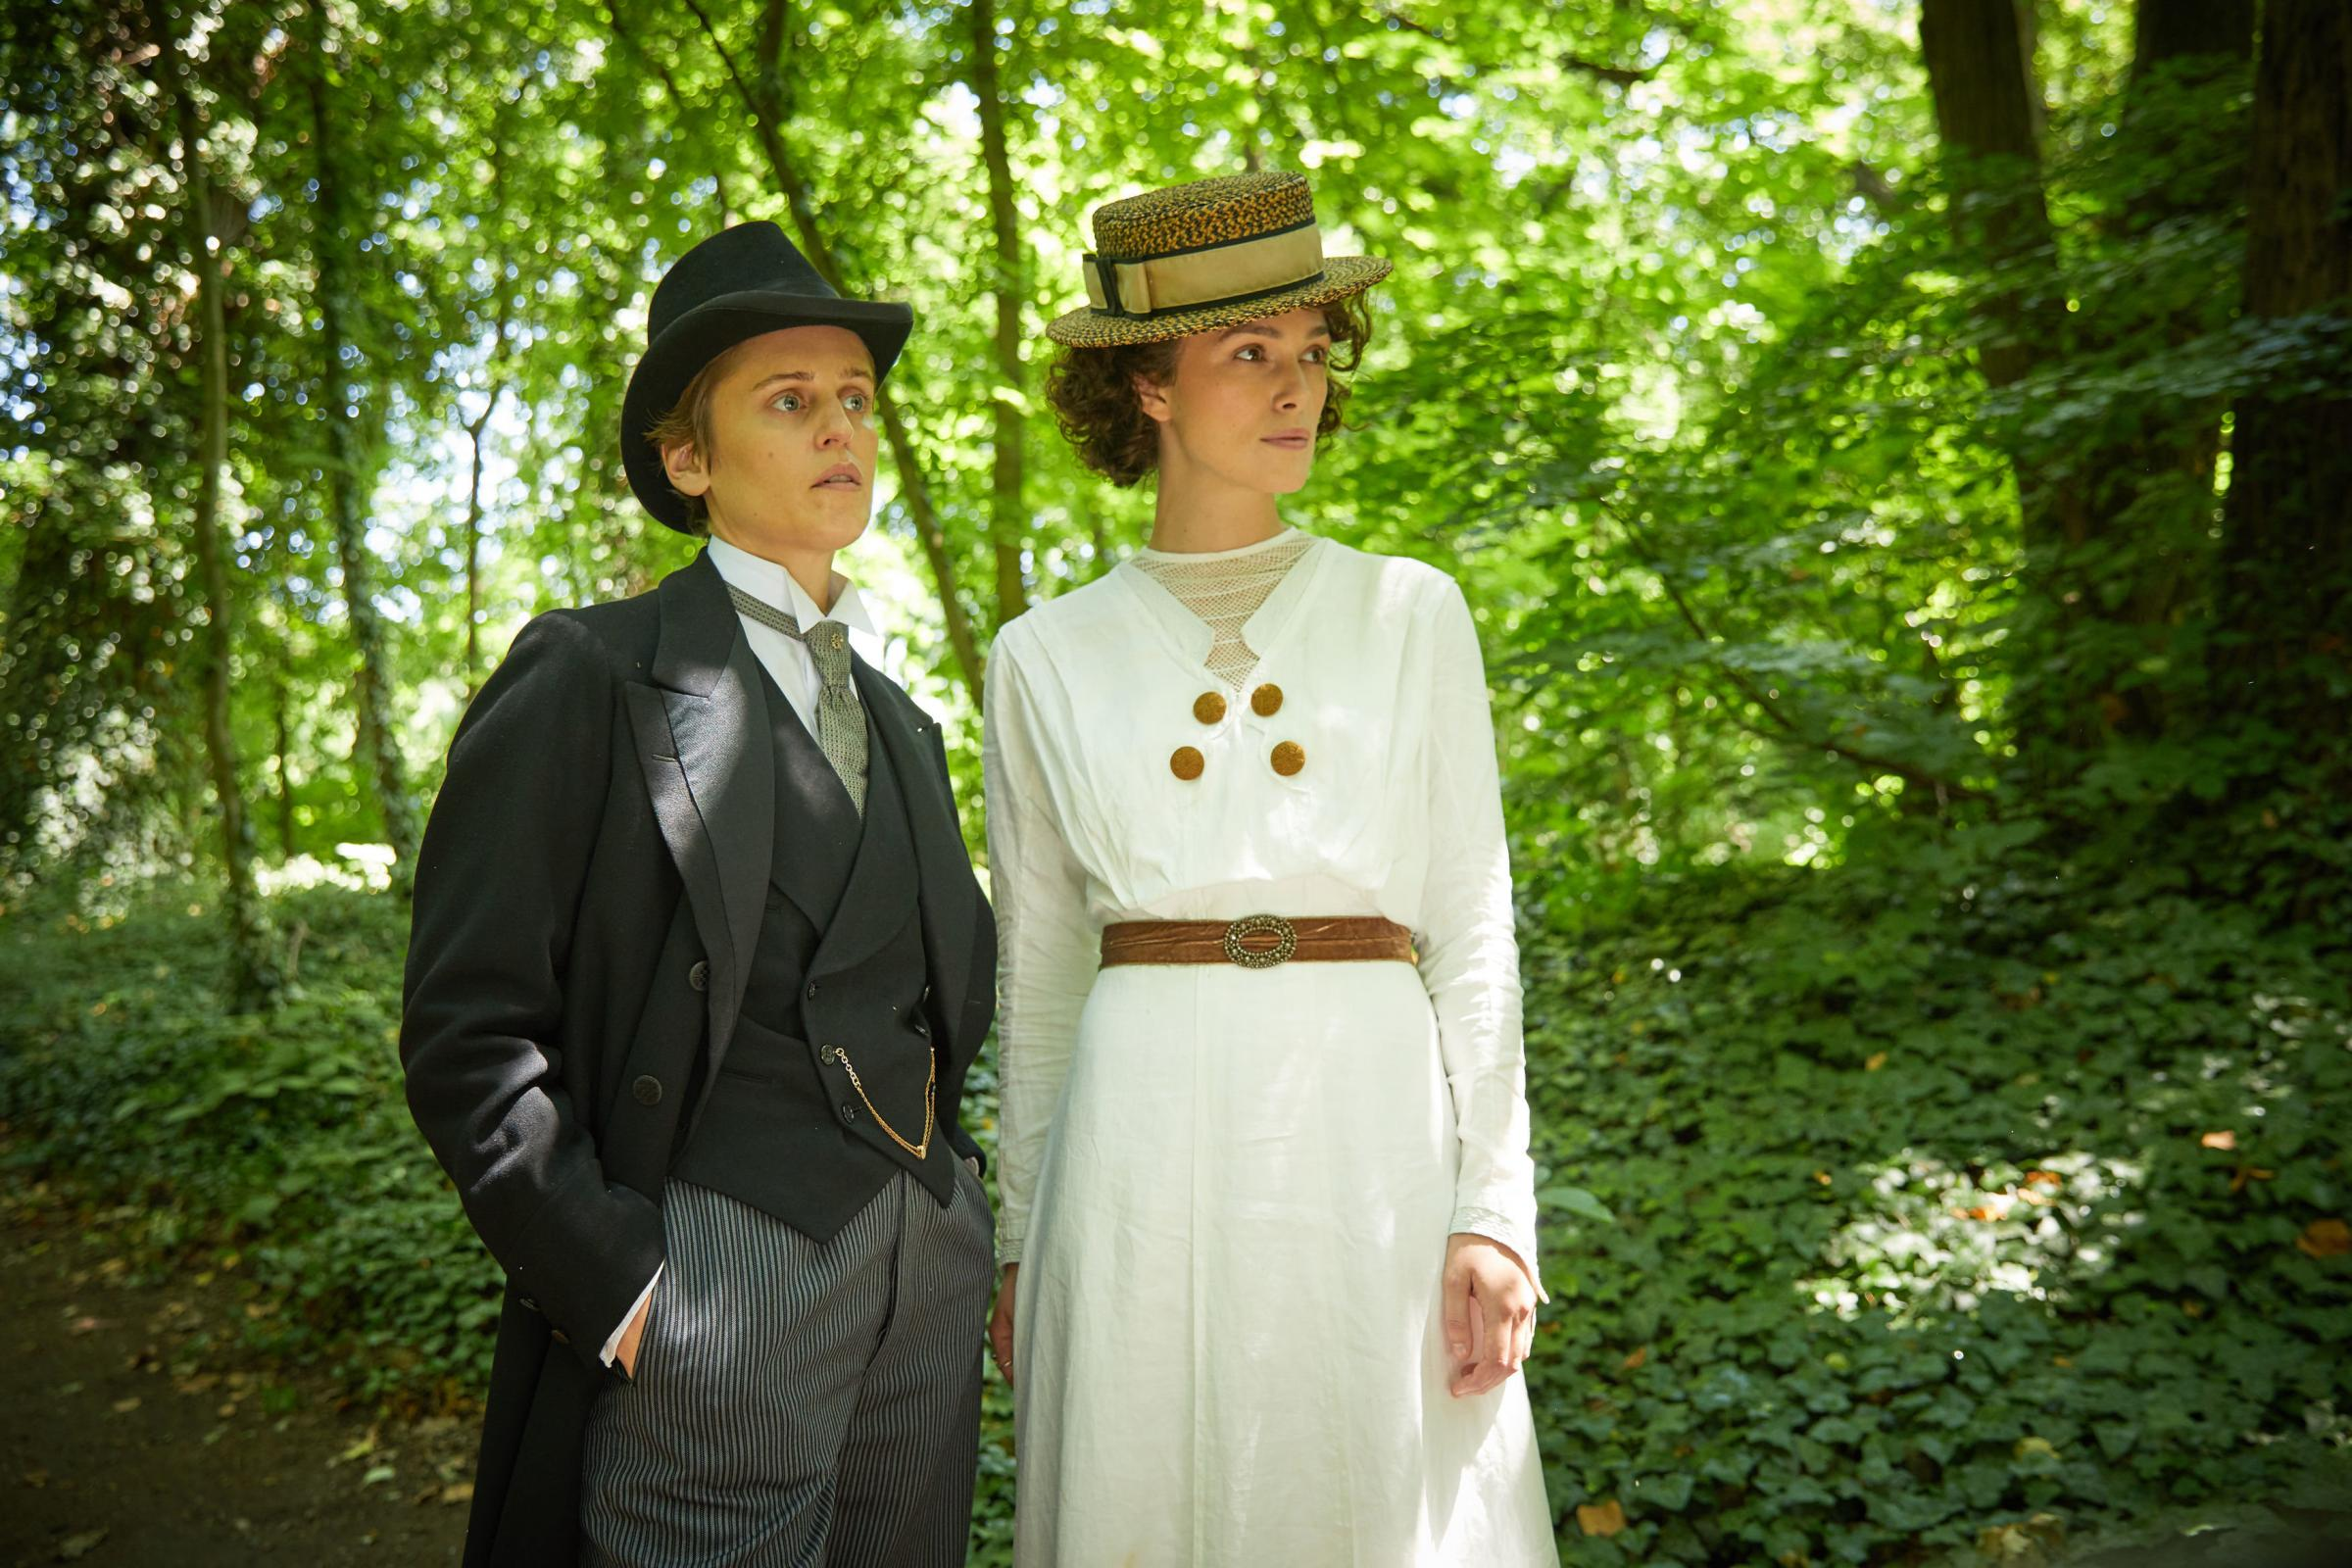 Denise Gough as Mathilde de Morny aka Missy and Keira Knightley as Sidonie-Gabrielle Colette. PA Photo/Lionsgate Films